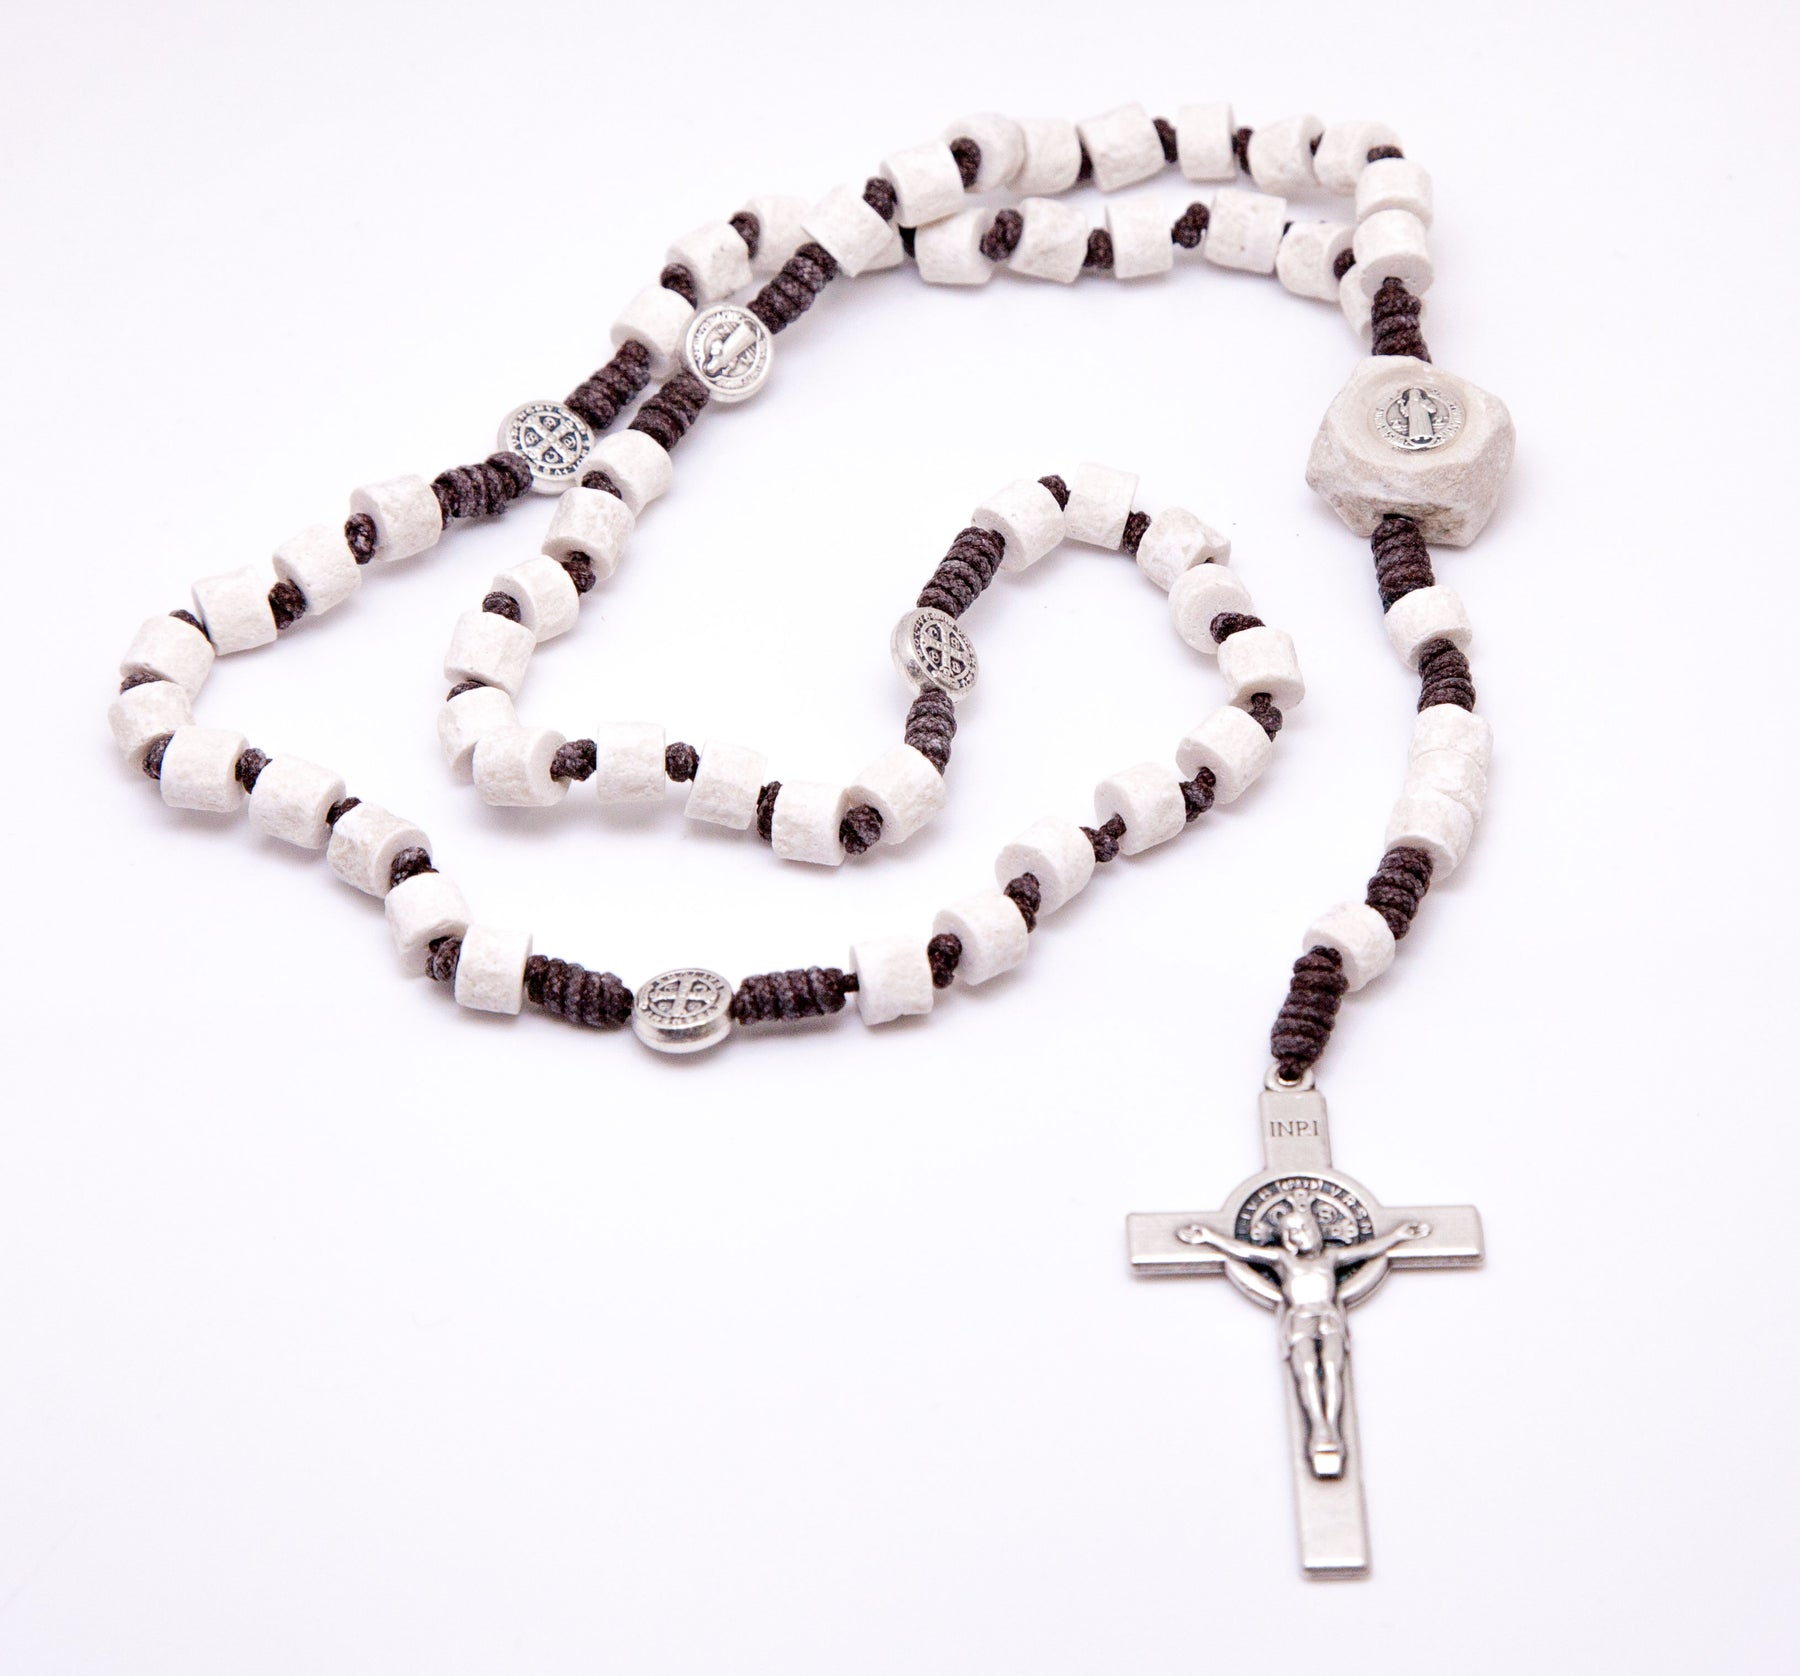 Medjugorje St. Benedict Stone Rosary - Brown Cord